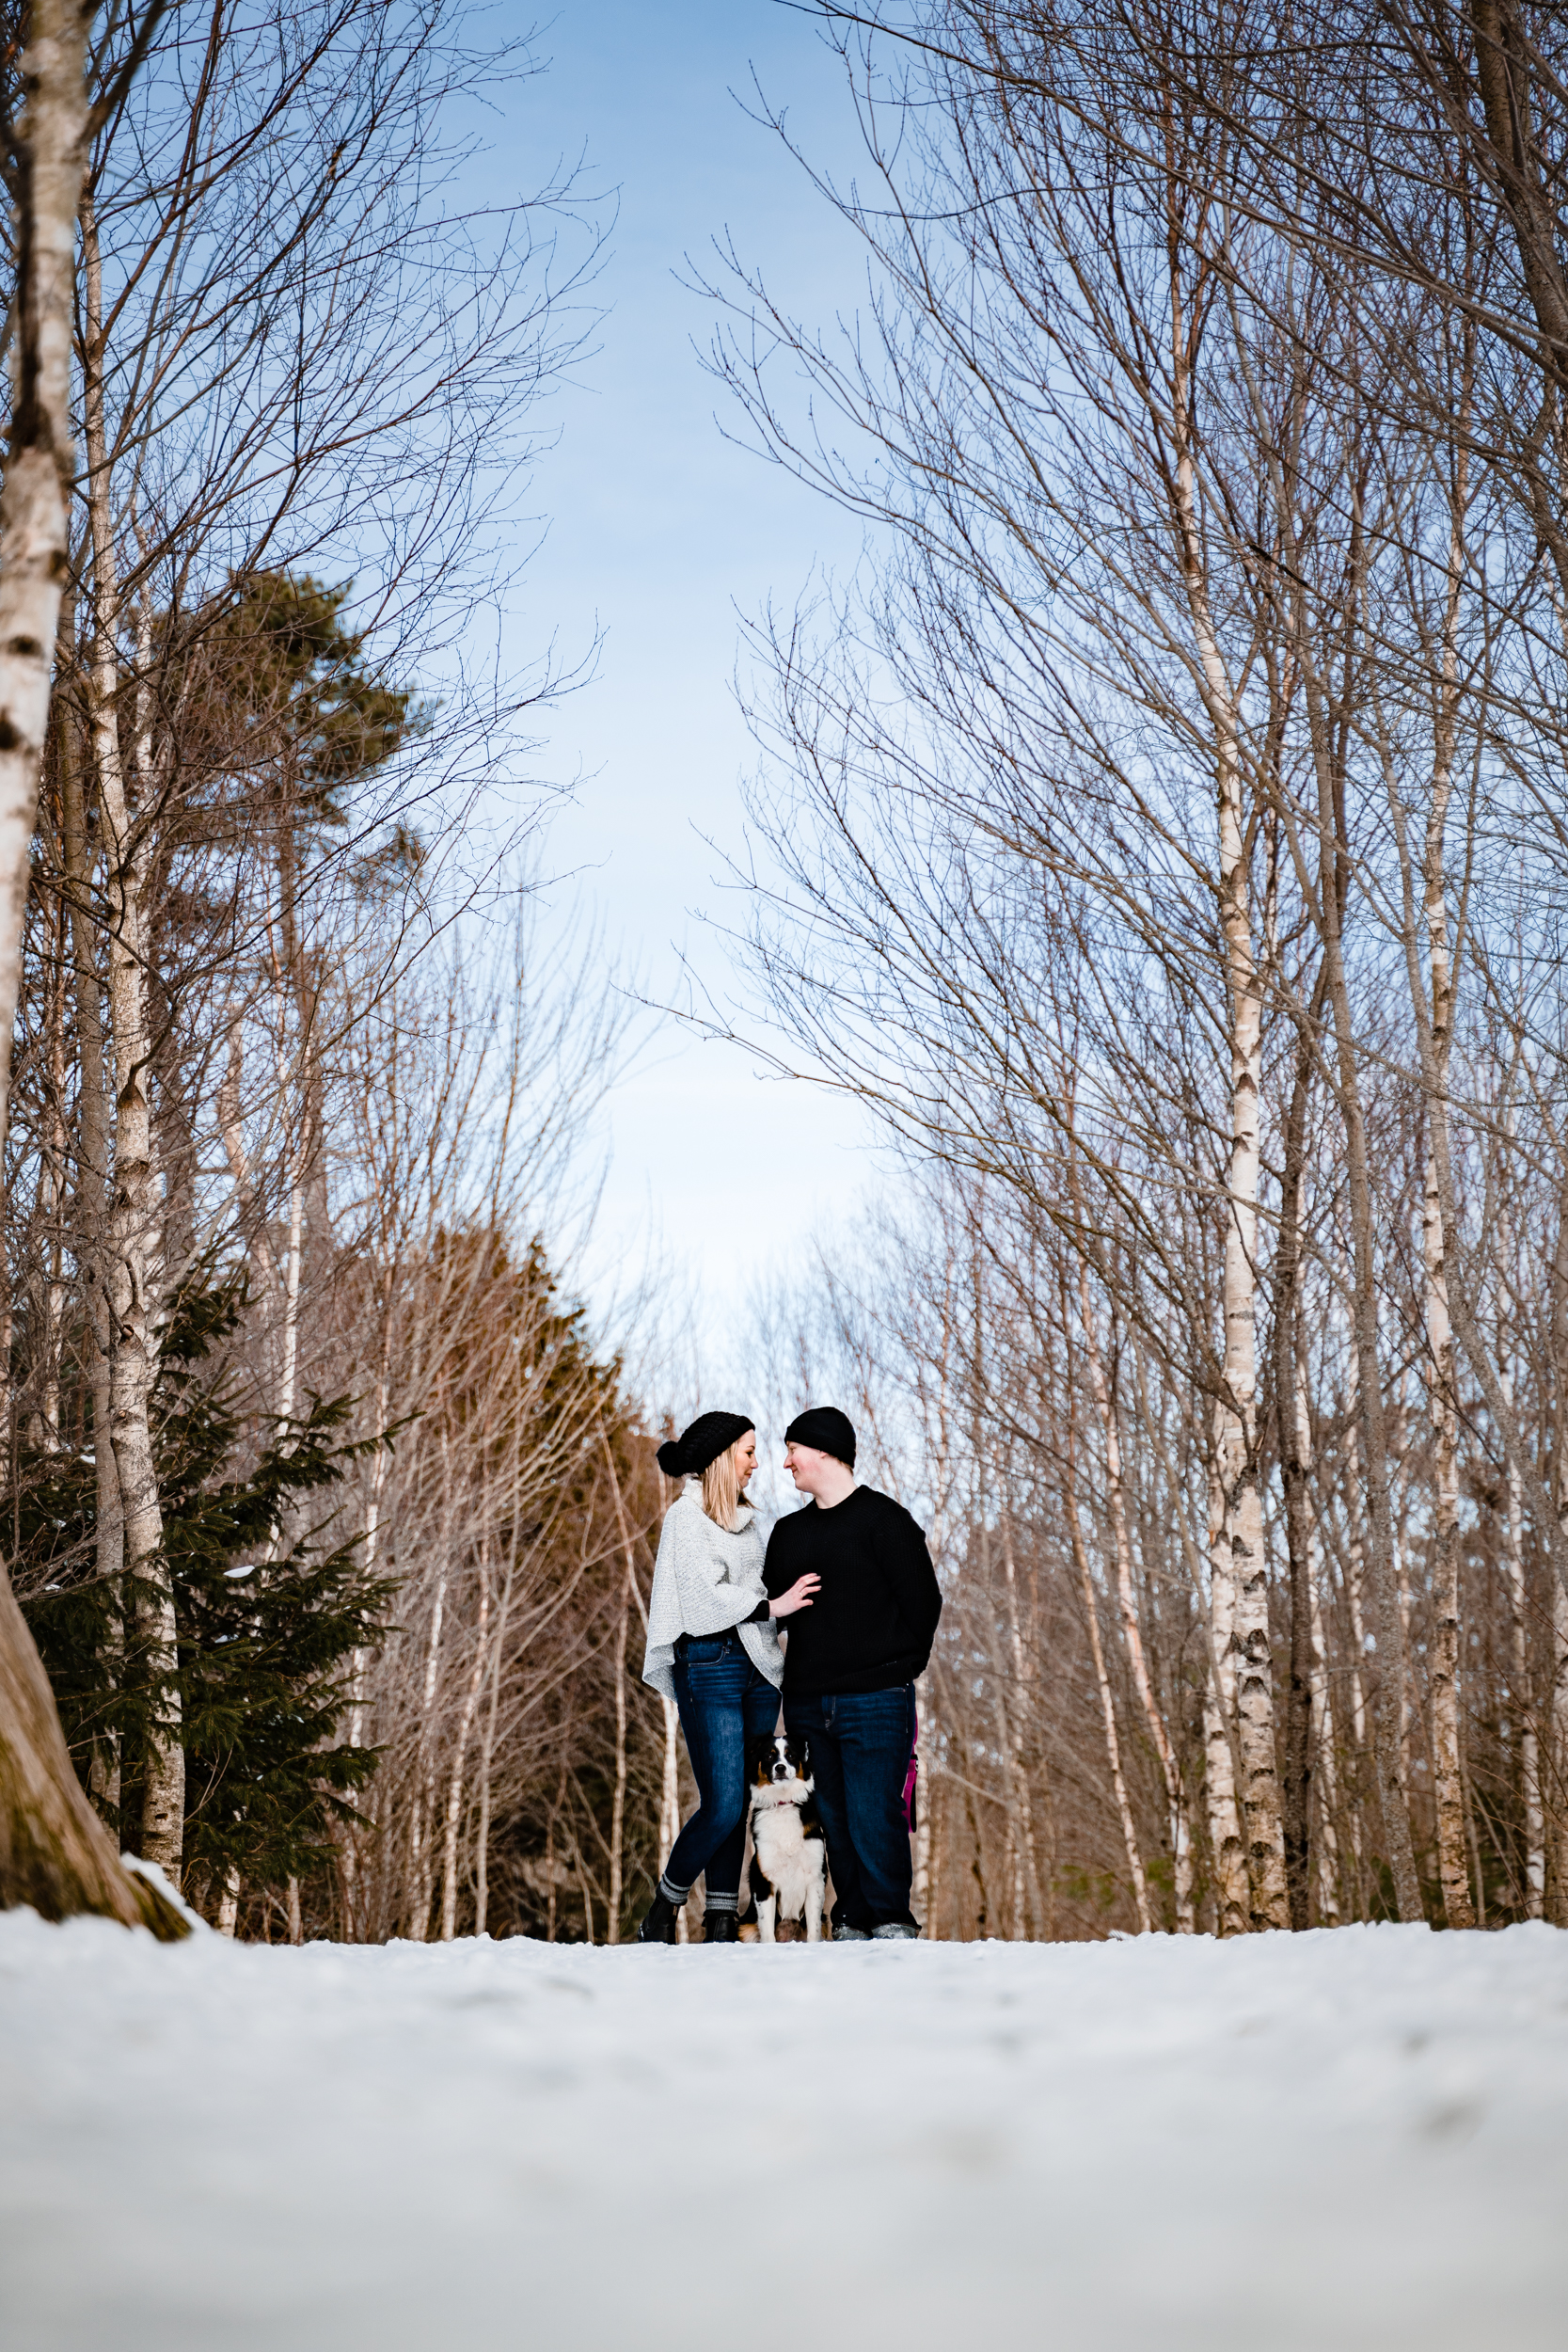 Haley&Brandon (18 of 64)halifax-novascotia-engagementphotography-wedding-foxandfellow-Ottawa-winter.jpg